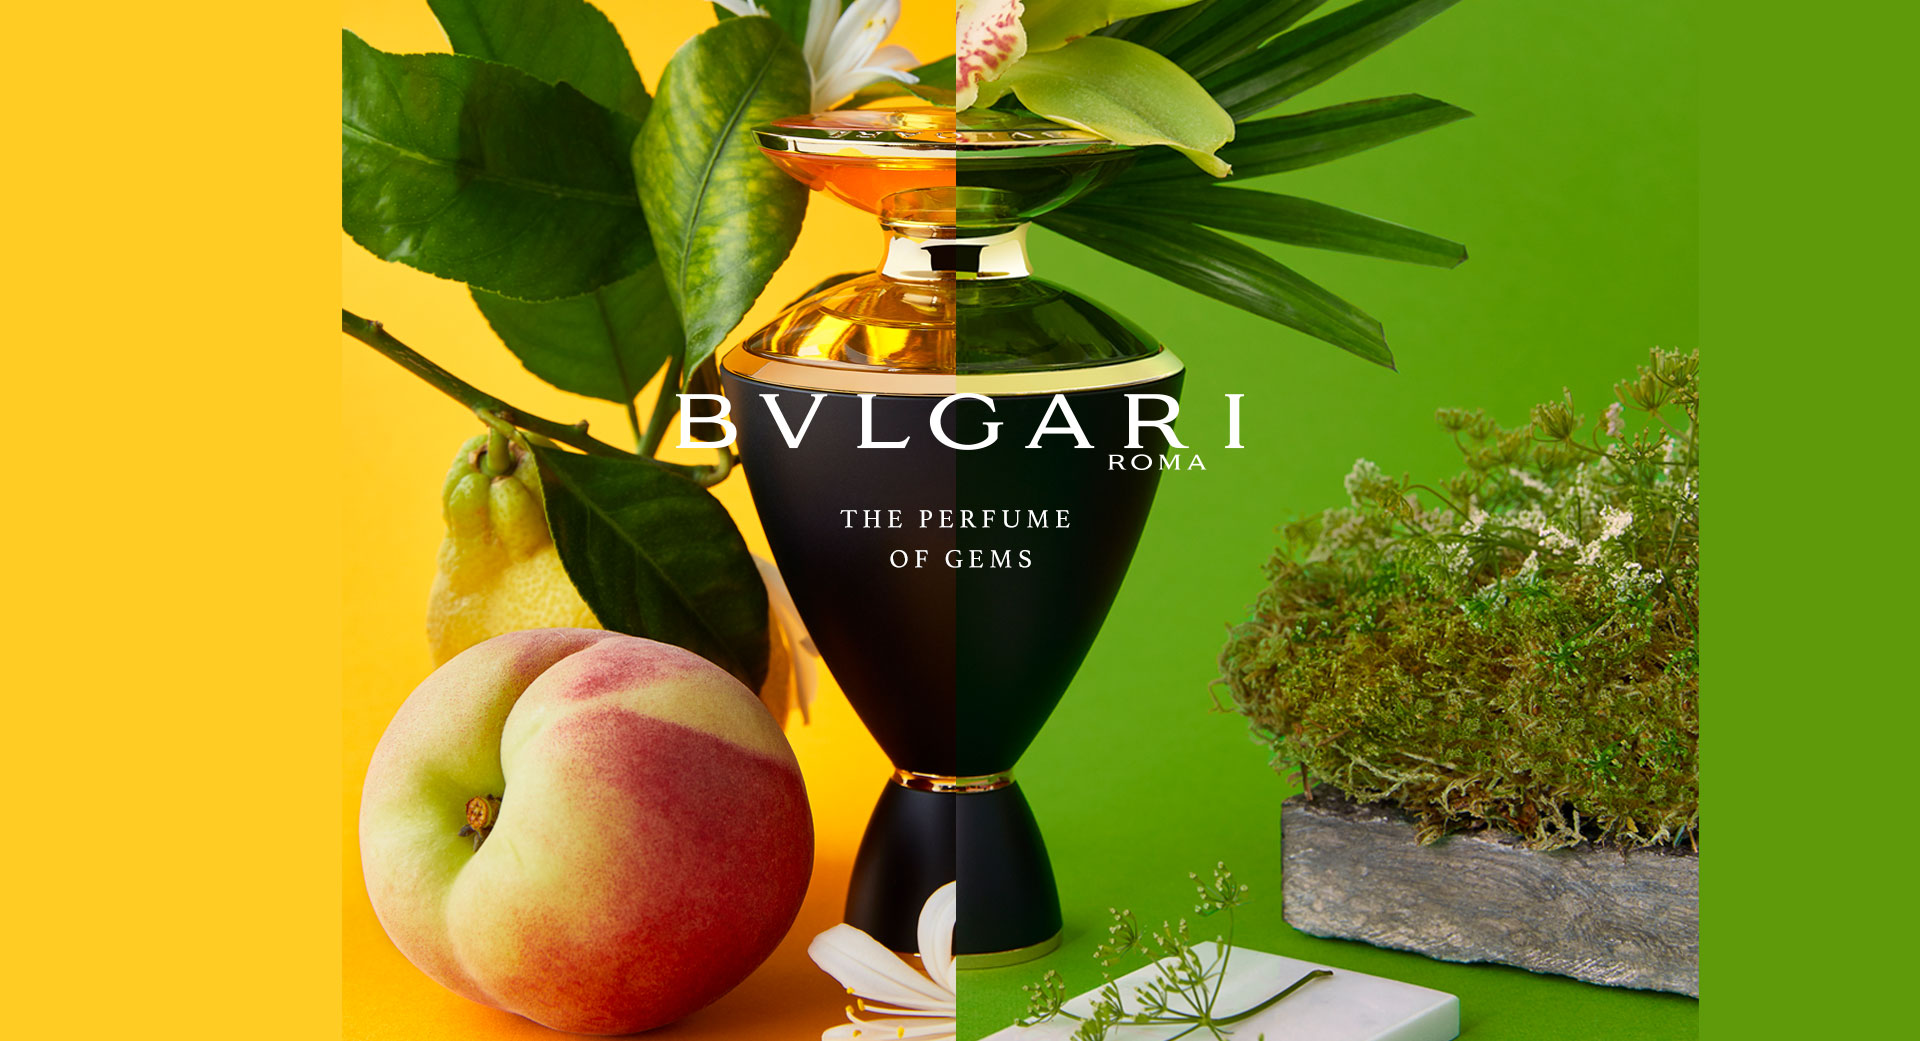 BVLGARI – The Perfume of Gems